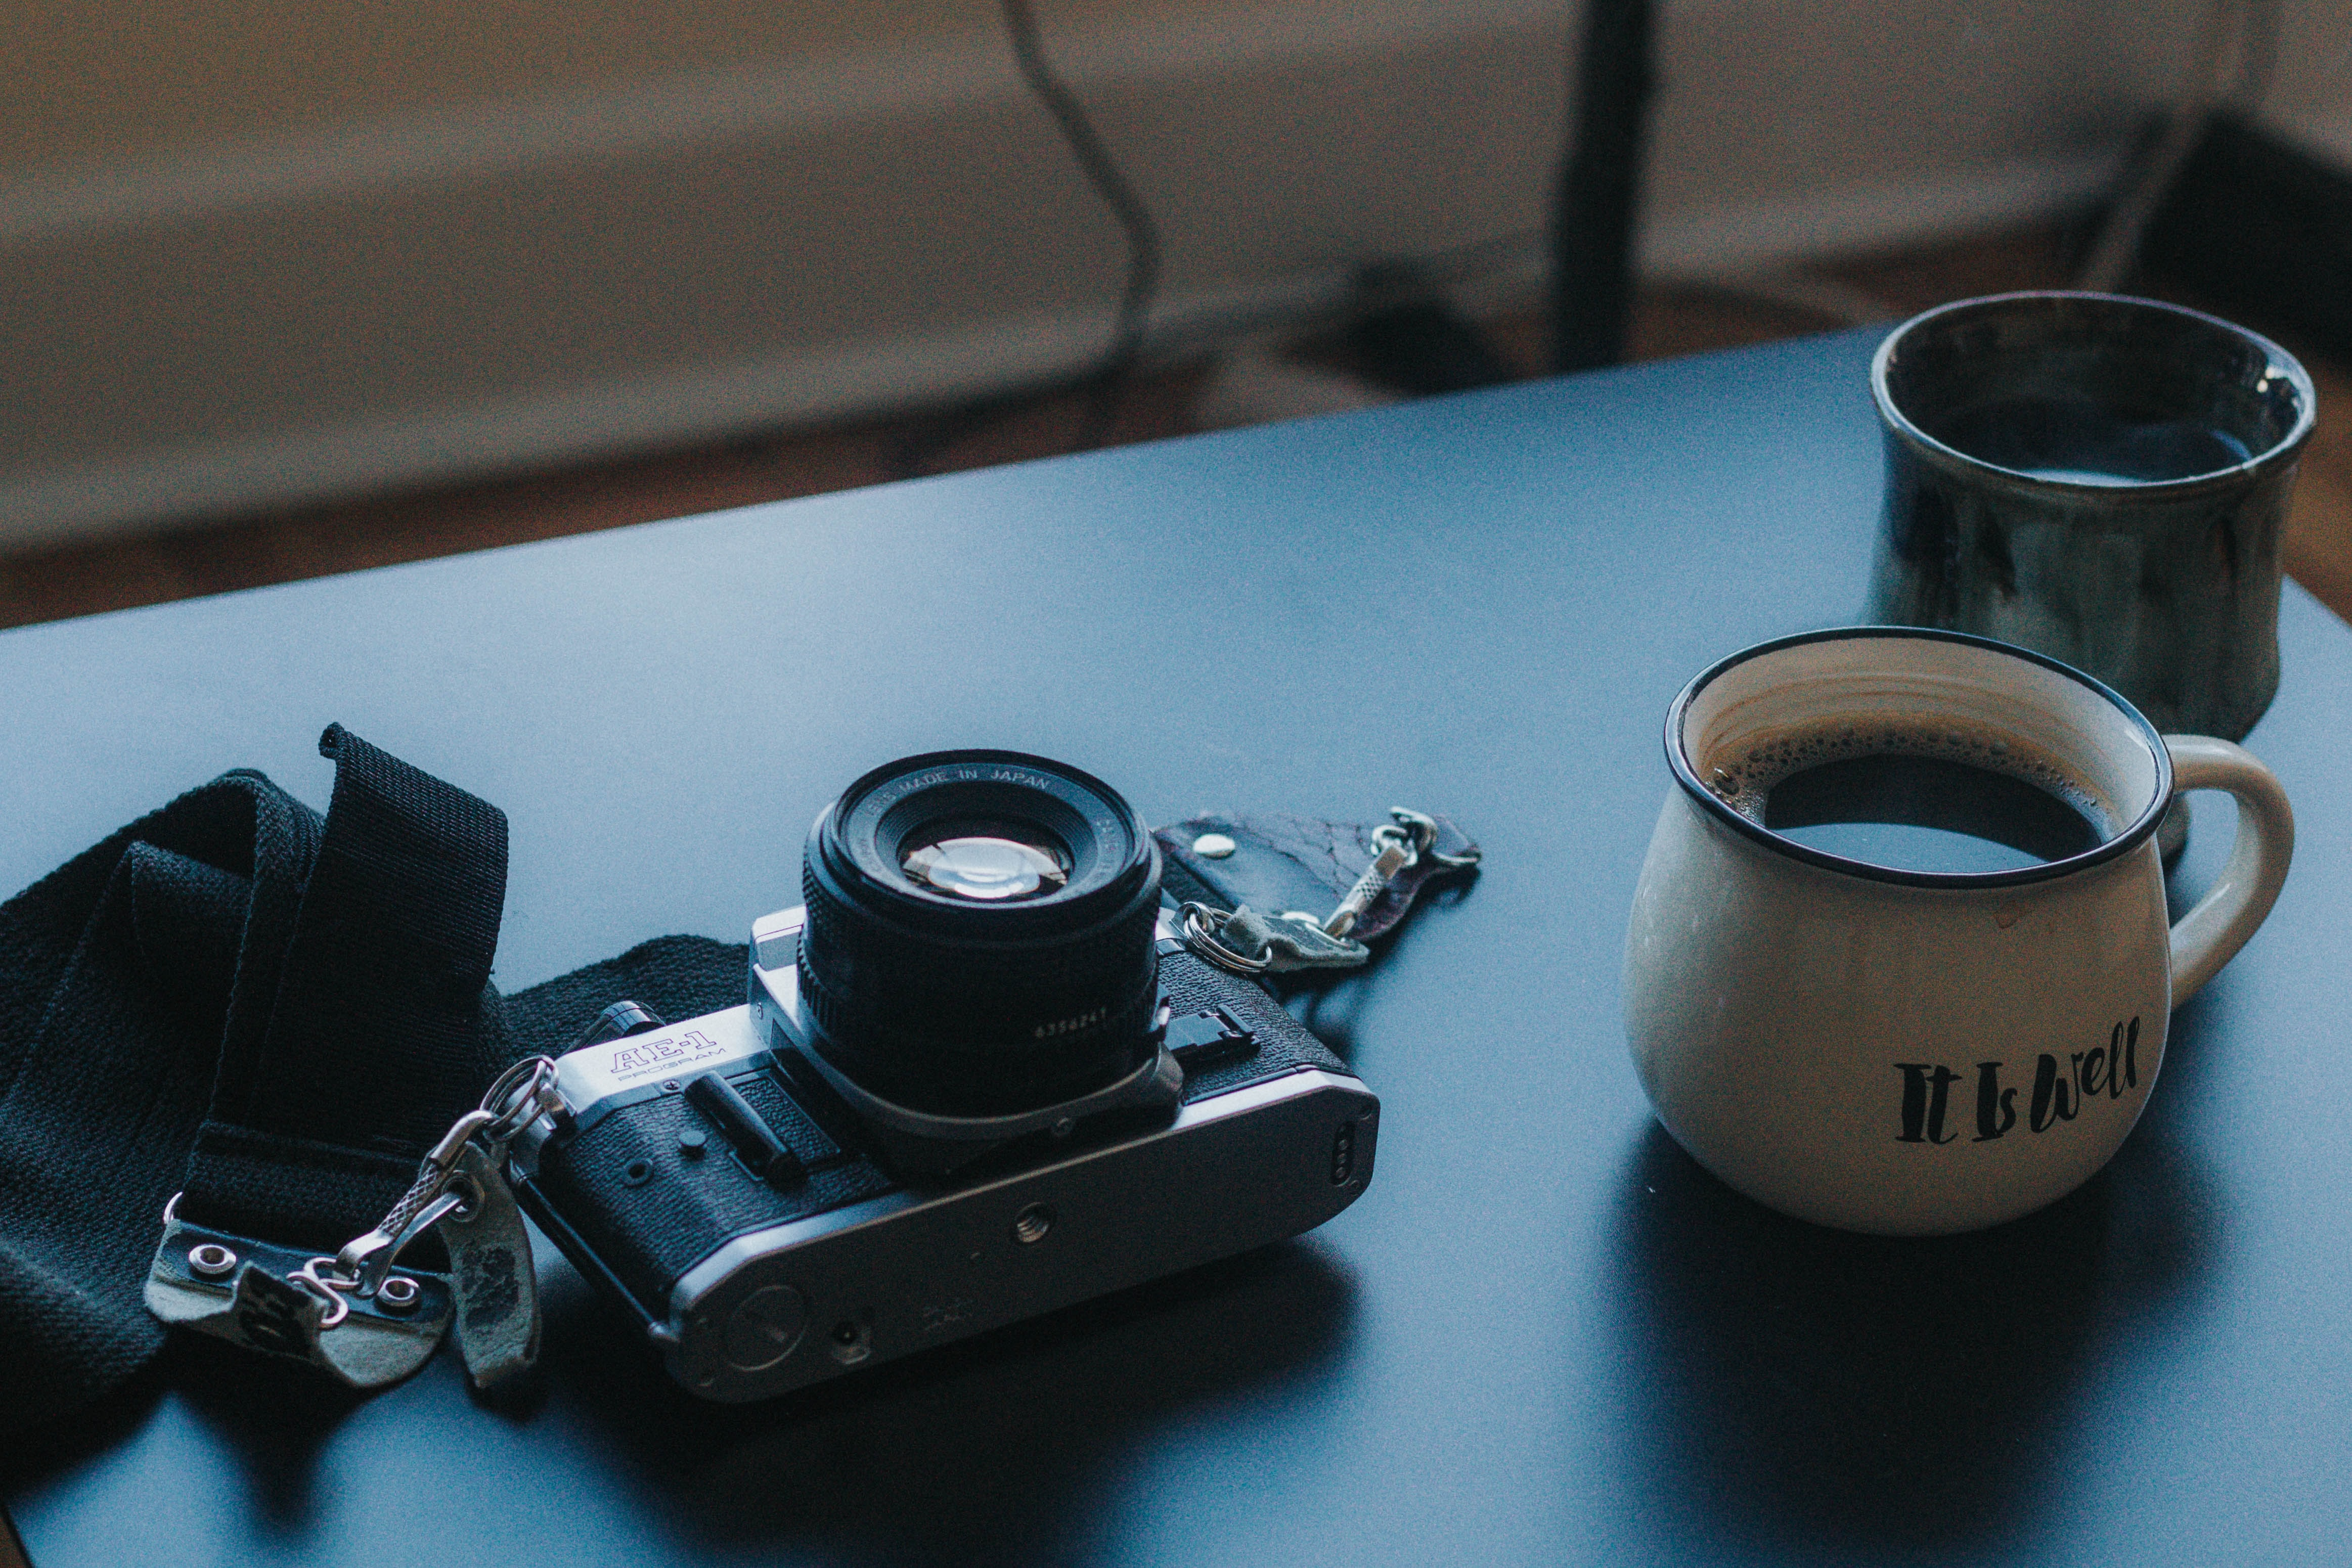 black DSLR camera beside ceramic cup filled with coffee